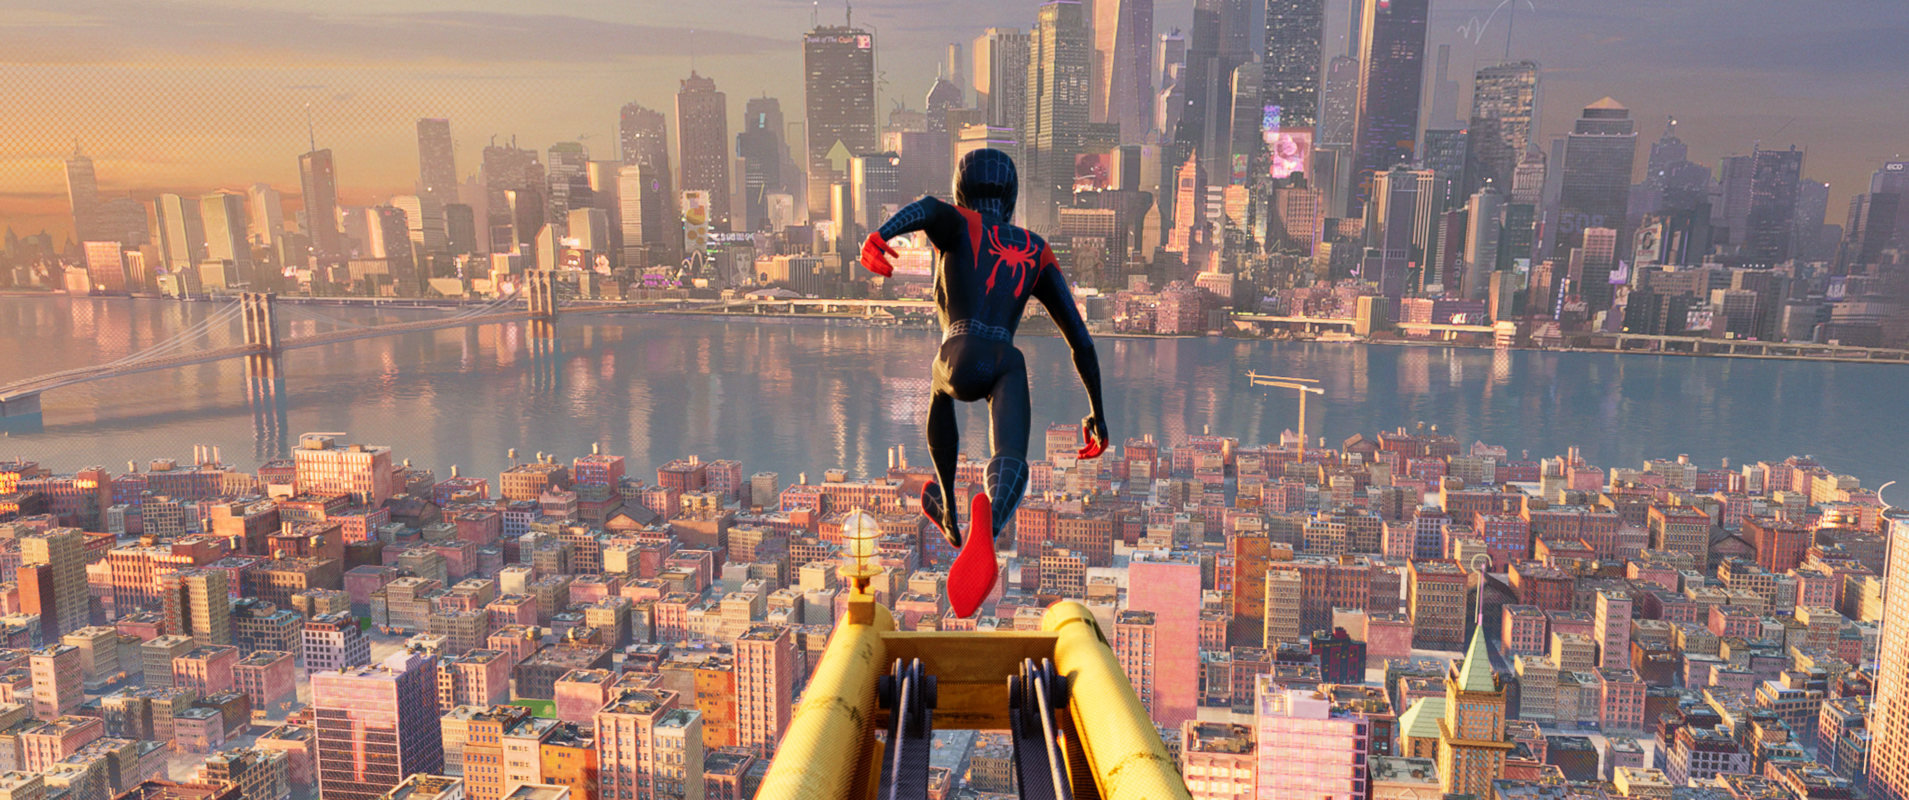 ART OF THE CUT on editing Spider-Man: Into the Spider-Verse 7